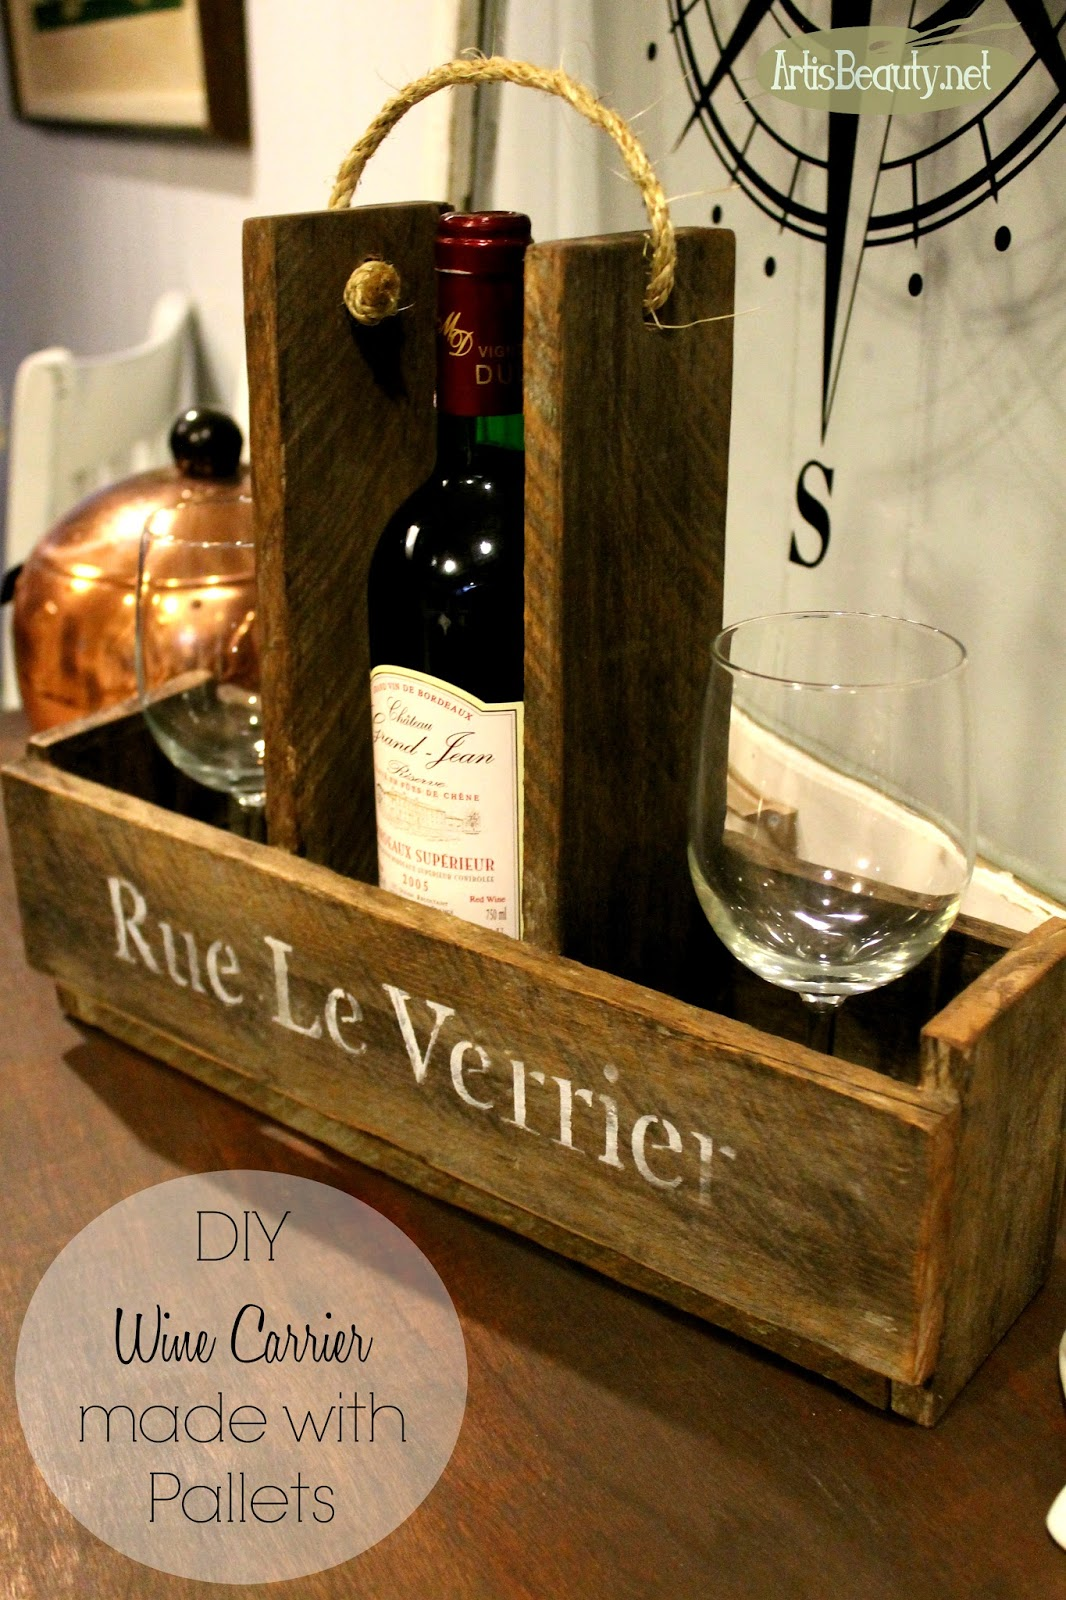 ART IS BEAUTY: DIY French Wine And Wine Glass Carrier Made